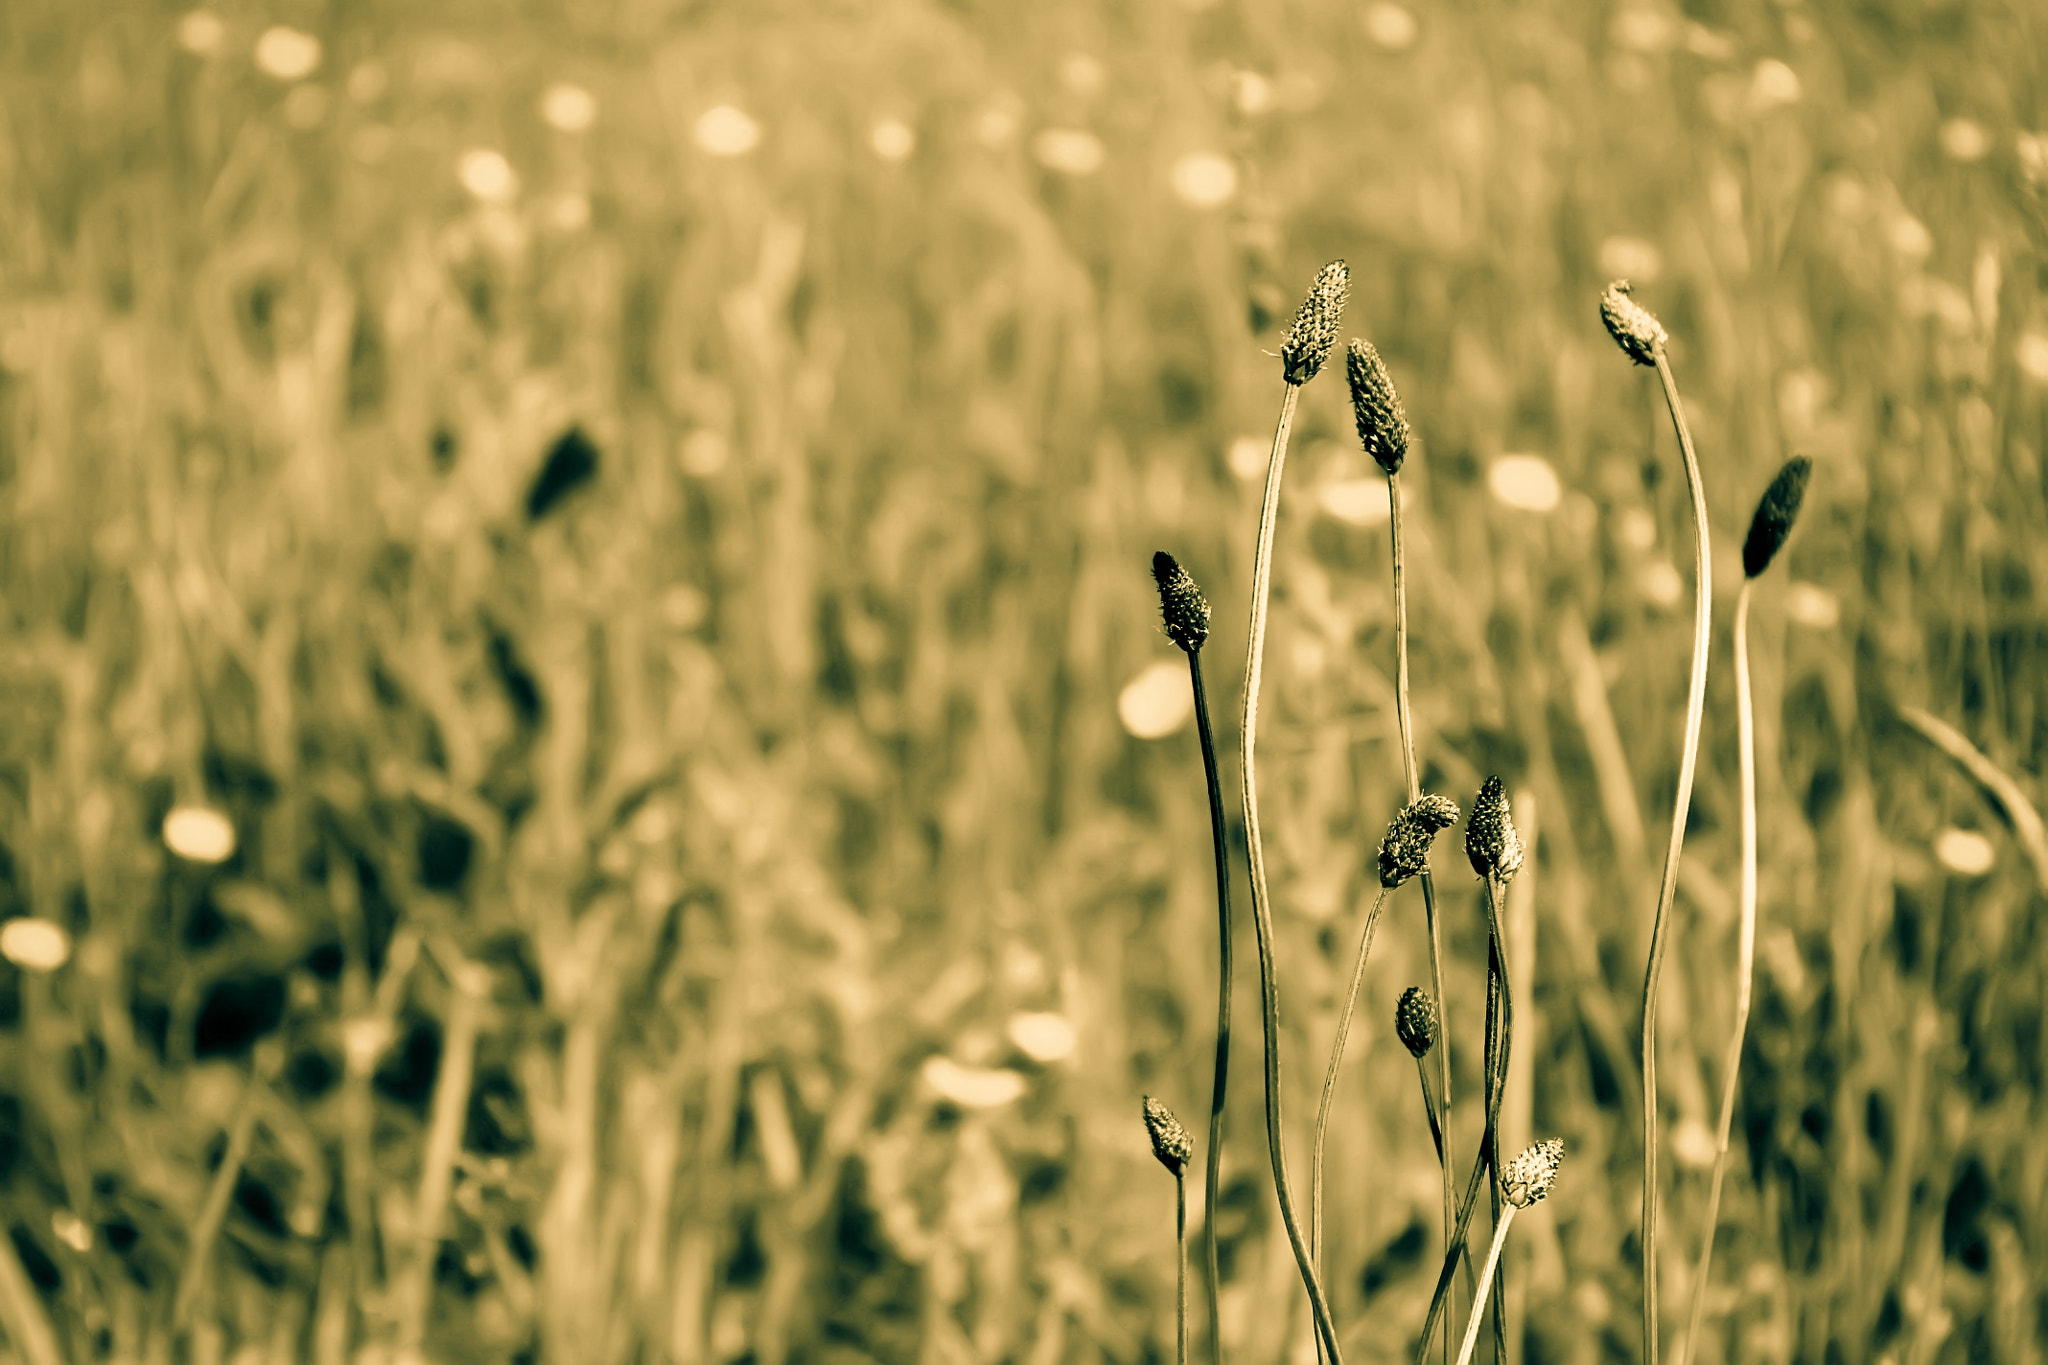 Photograph Weeds by Ahmed Fayadh on 500px